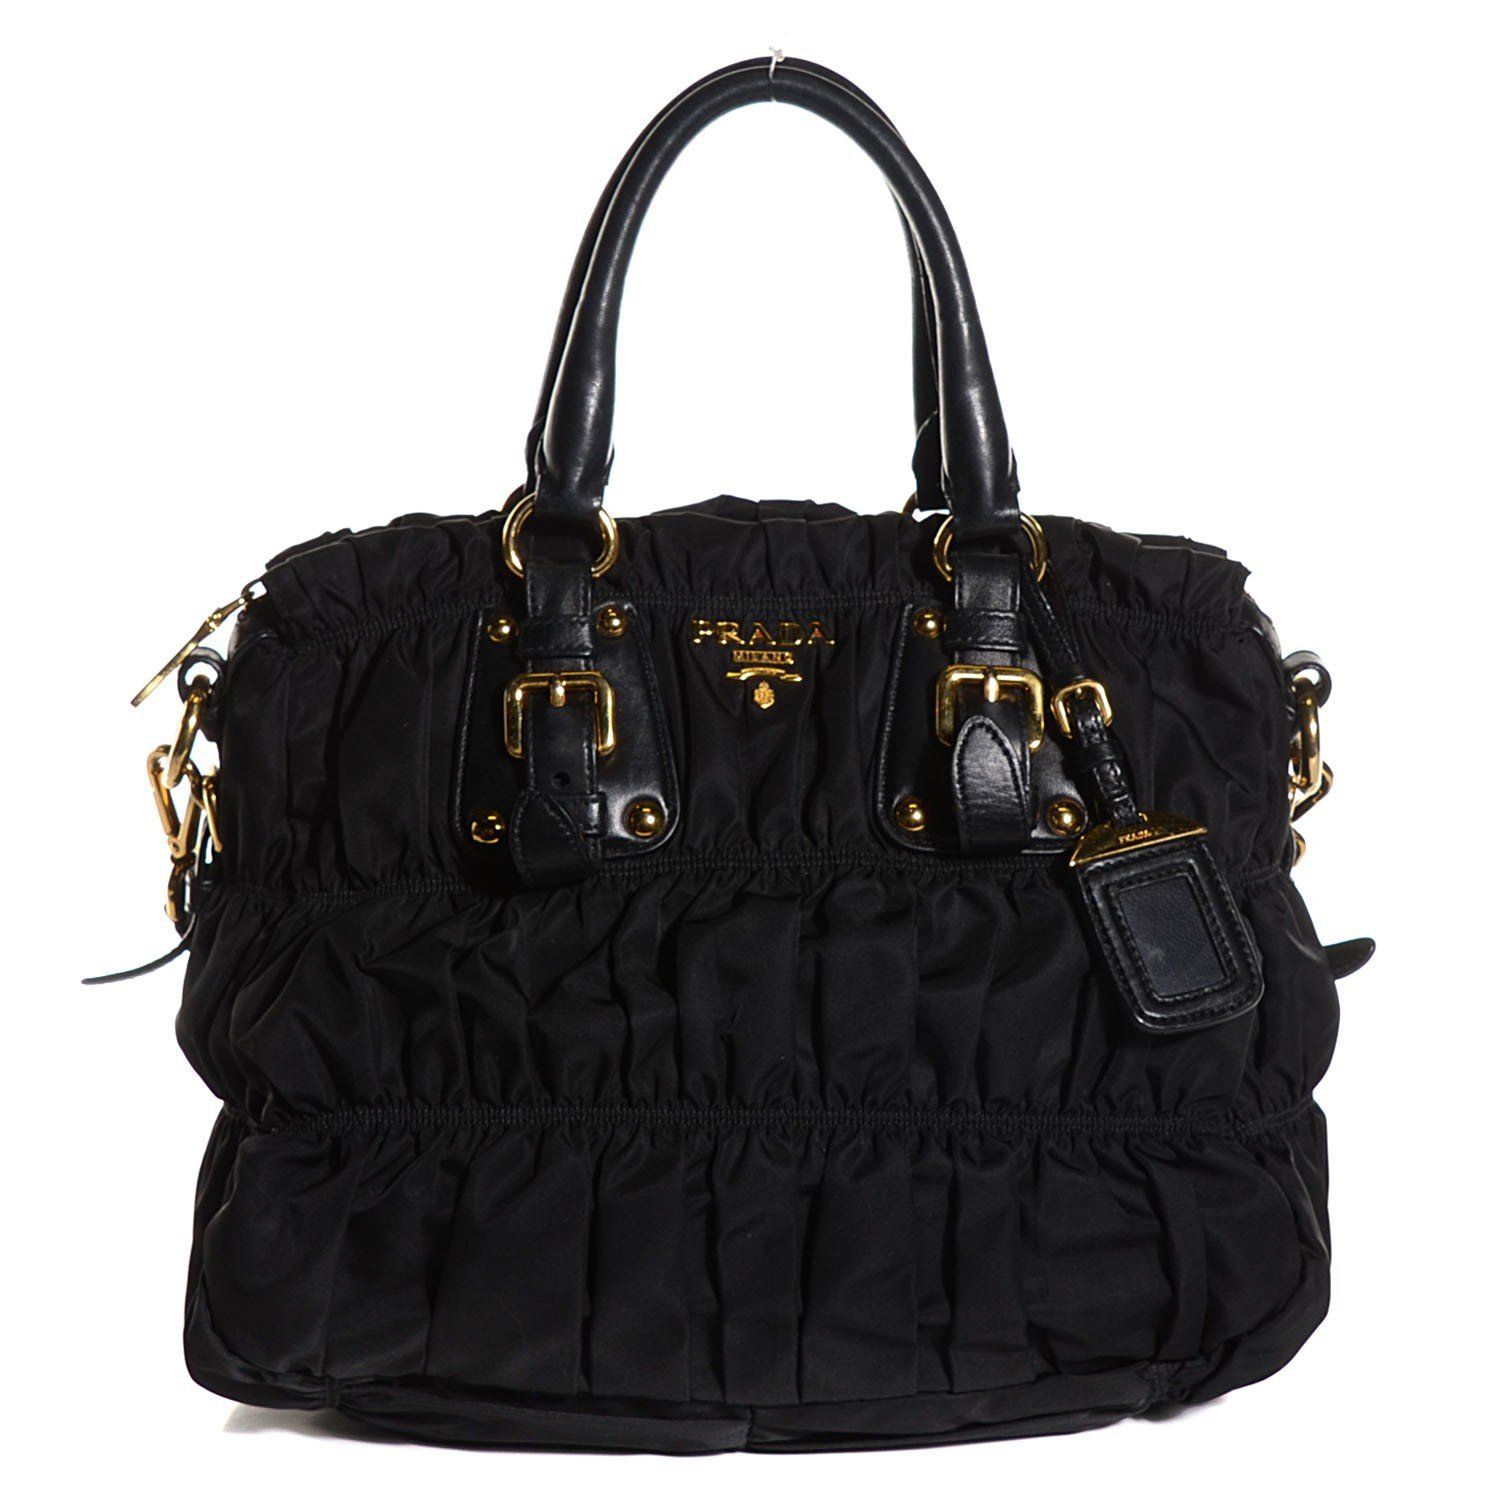 dc6e6fe558ff This is an authentic PRADA Tessuto Nylon Gaufre Tote in Nero Black. This  chic tote is crafted of fine tessuto multi-pleated multi-tiered nylon.